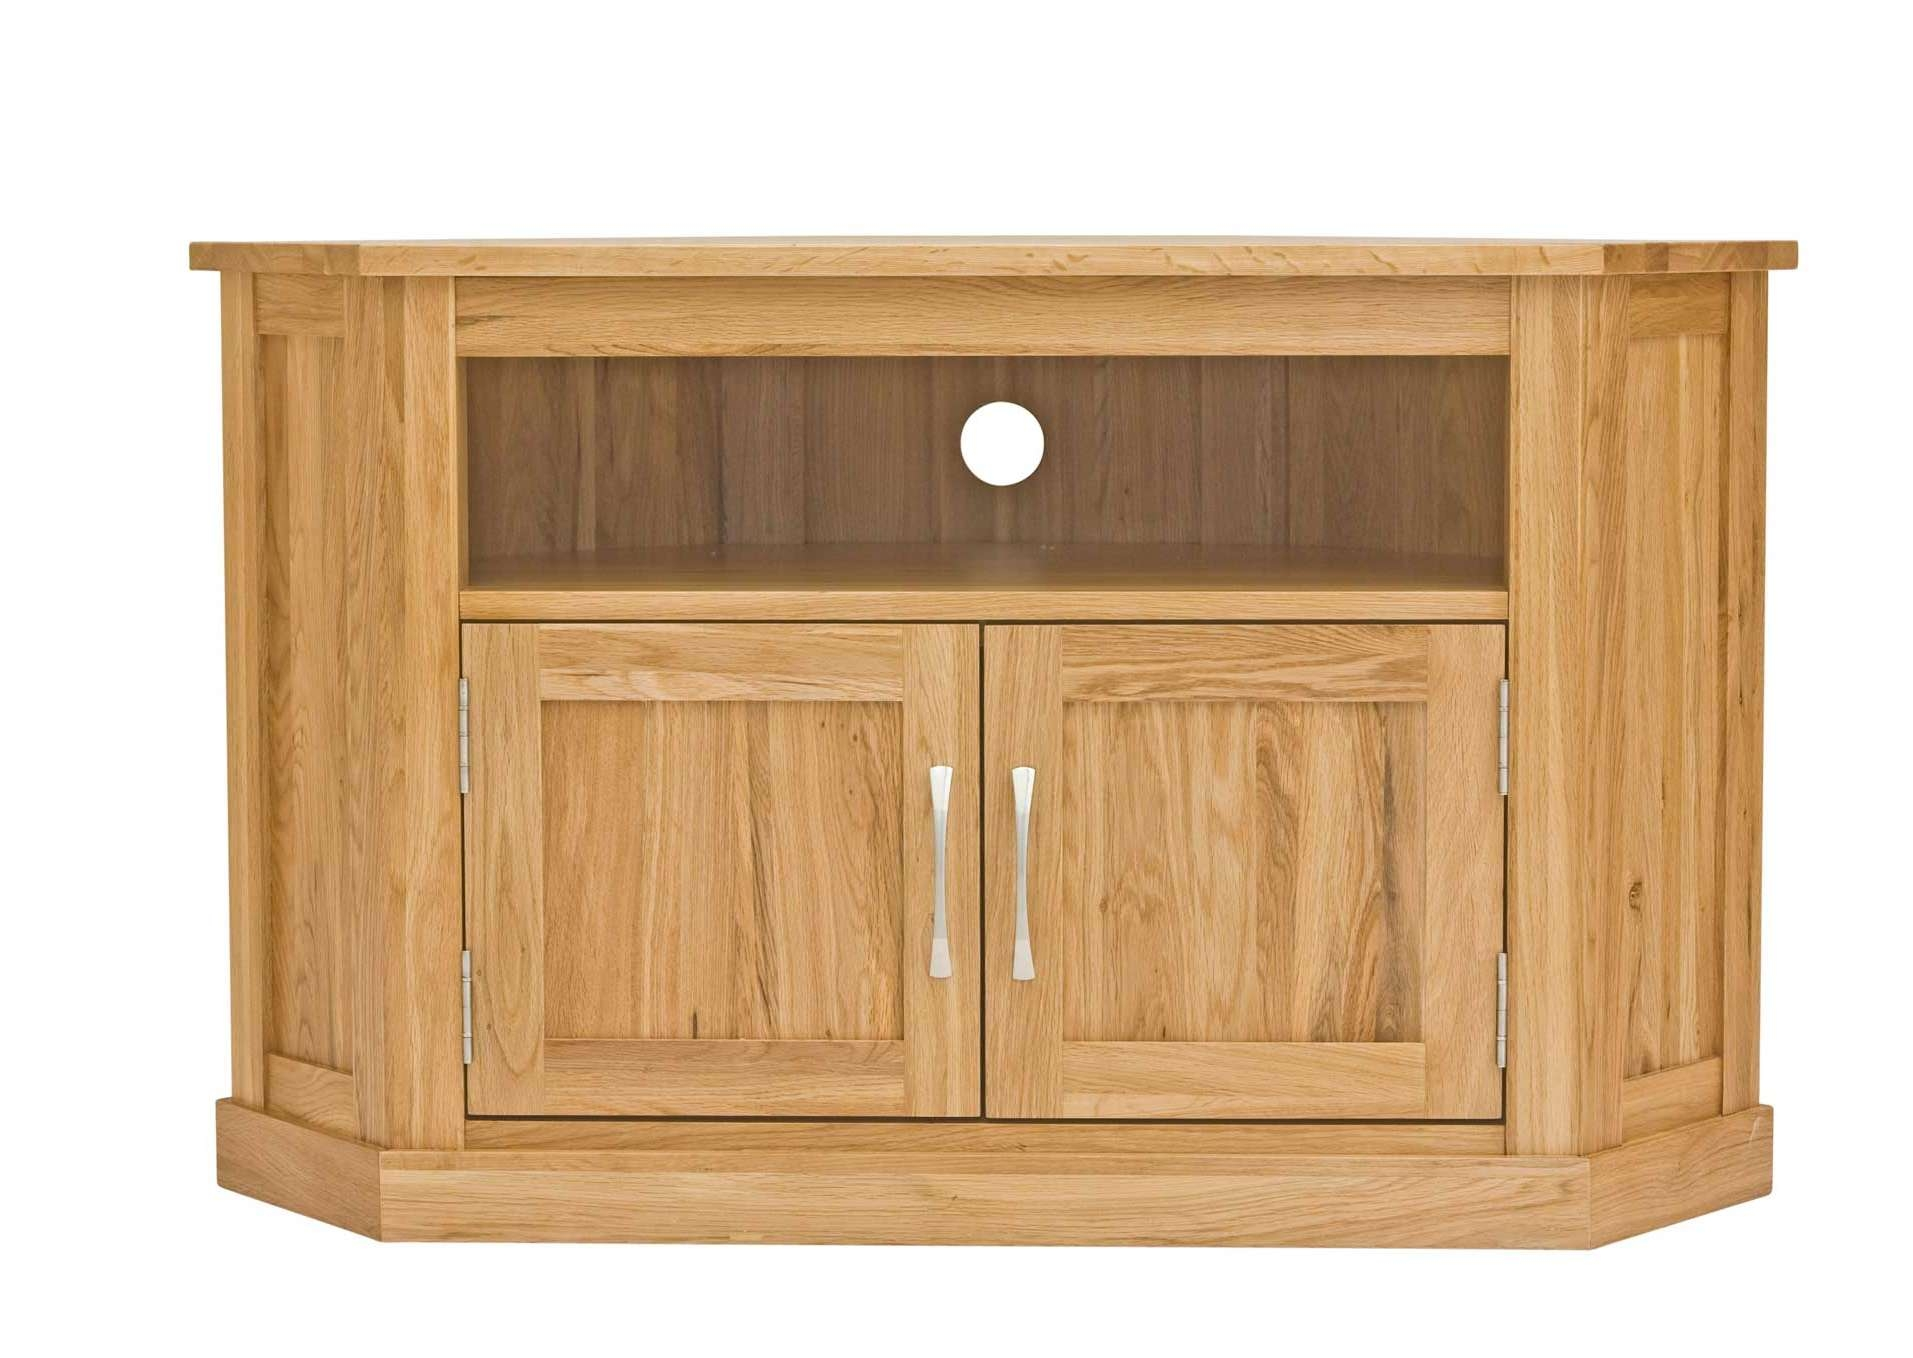 Classic Oak Corner Television Cabinet | Hampshire Furniture Intended For Corner Oak Tv Stands (View 1 of 15)